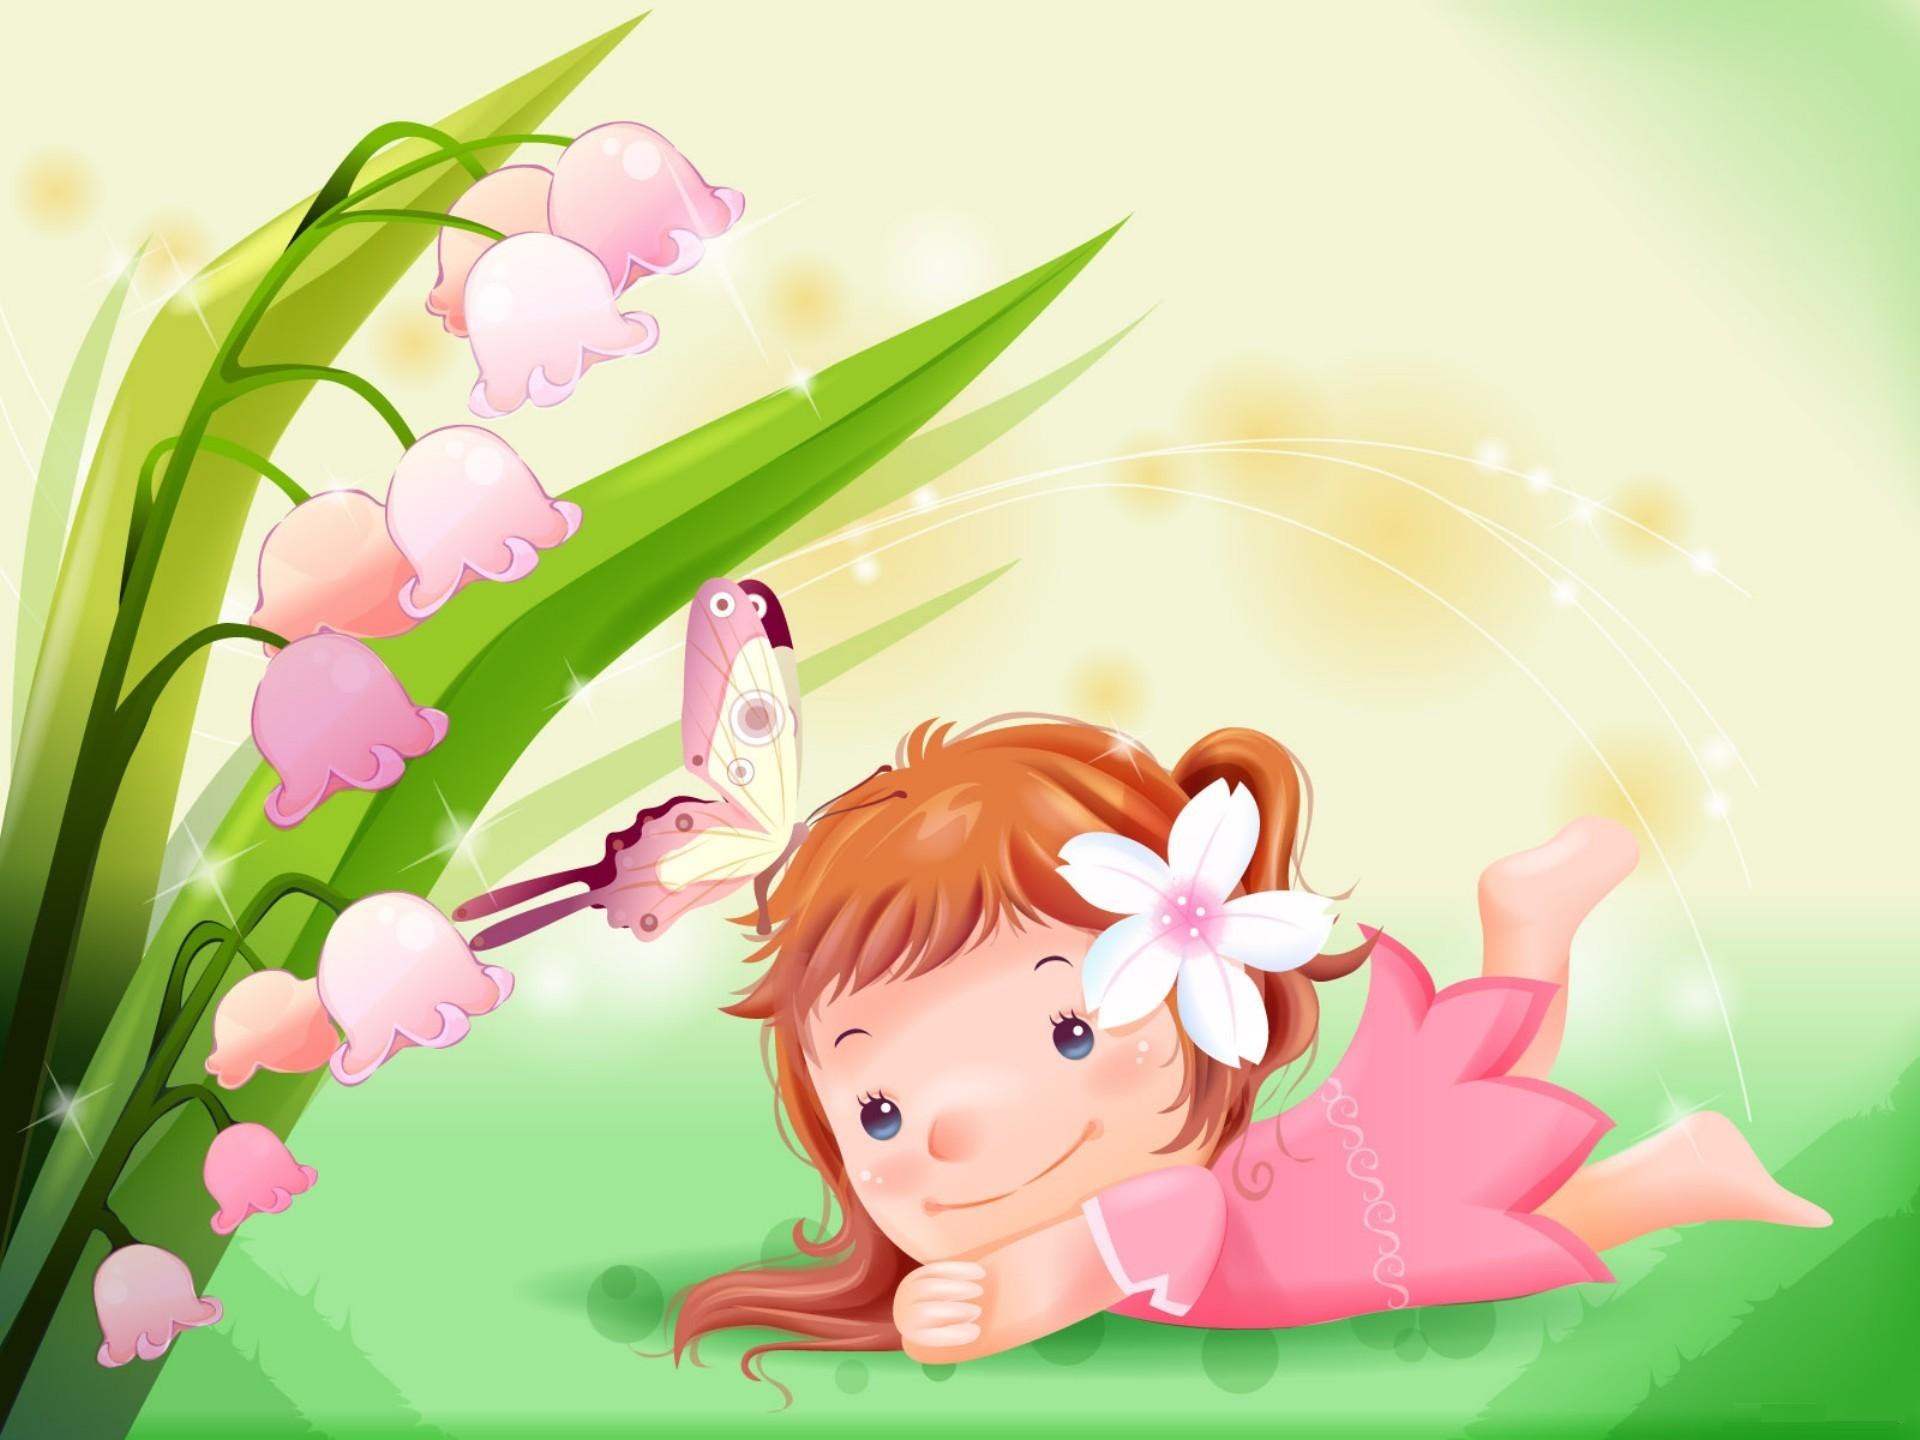 Wallpaper For Cute Little Girl With Butterfly Cartoon Give Them Full ...